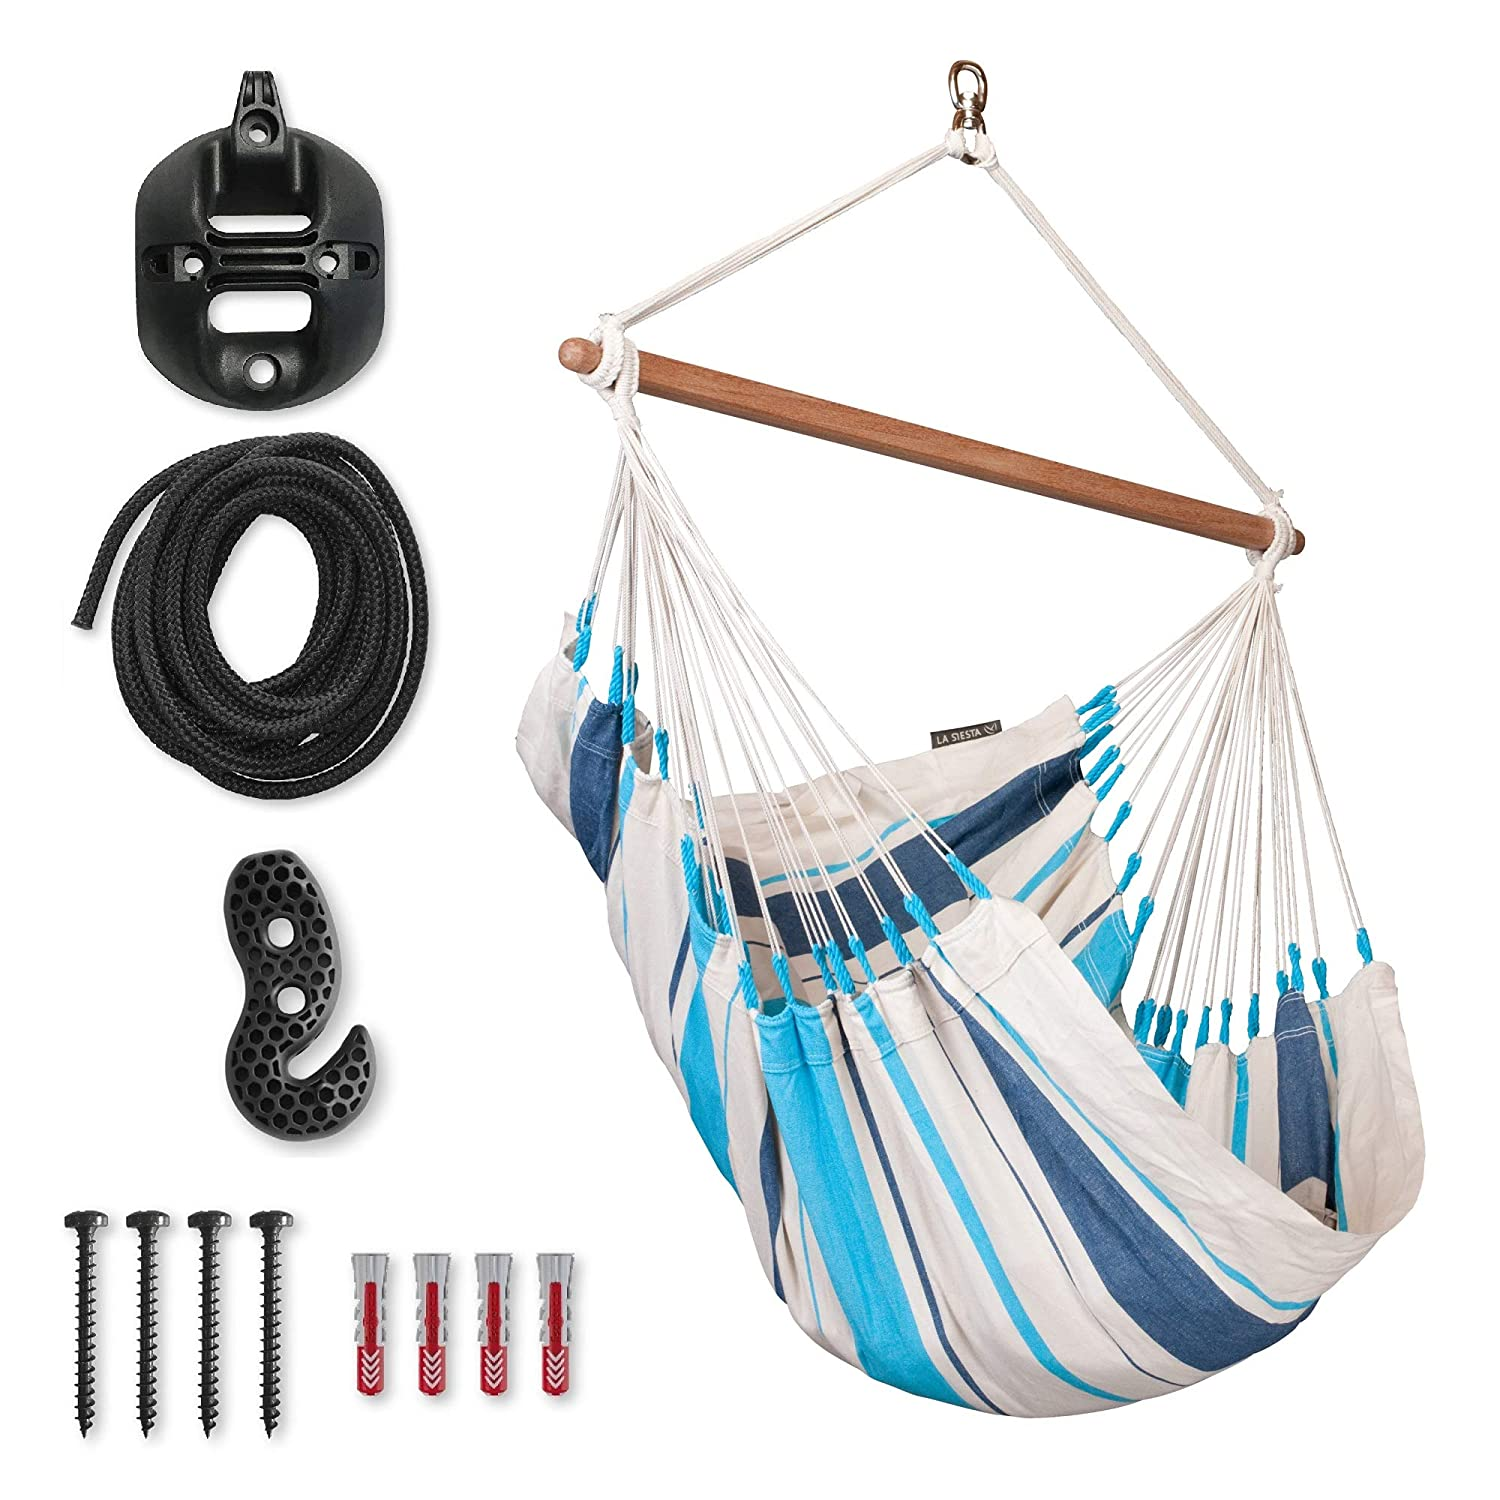 LA SIESTA Caribena Aqua Blue – Cotton Basic Hammock Swing Chair with CasaMount Black Multipurpose Suspension